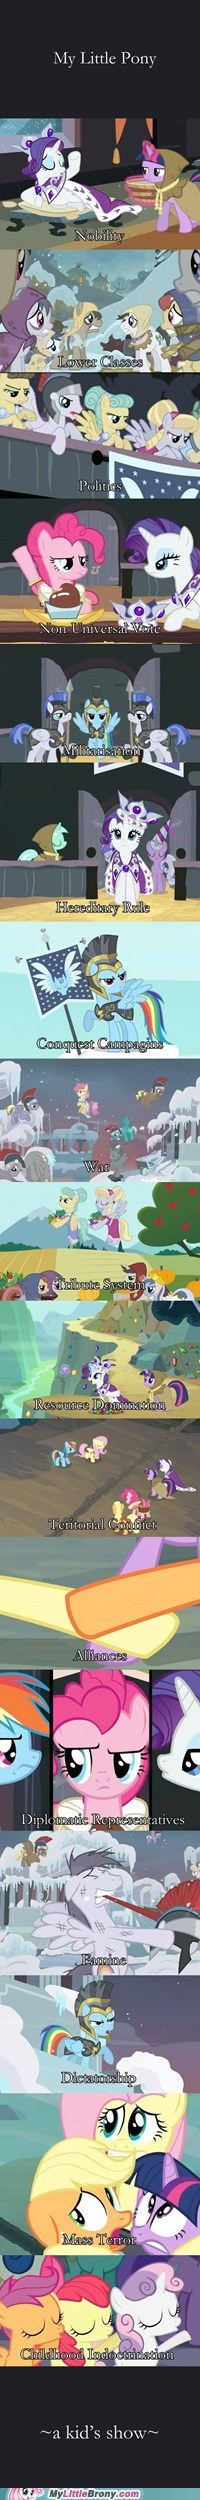 best of week Bronies comics kiddie show kids show life lessons my little pony politics - 5579799040